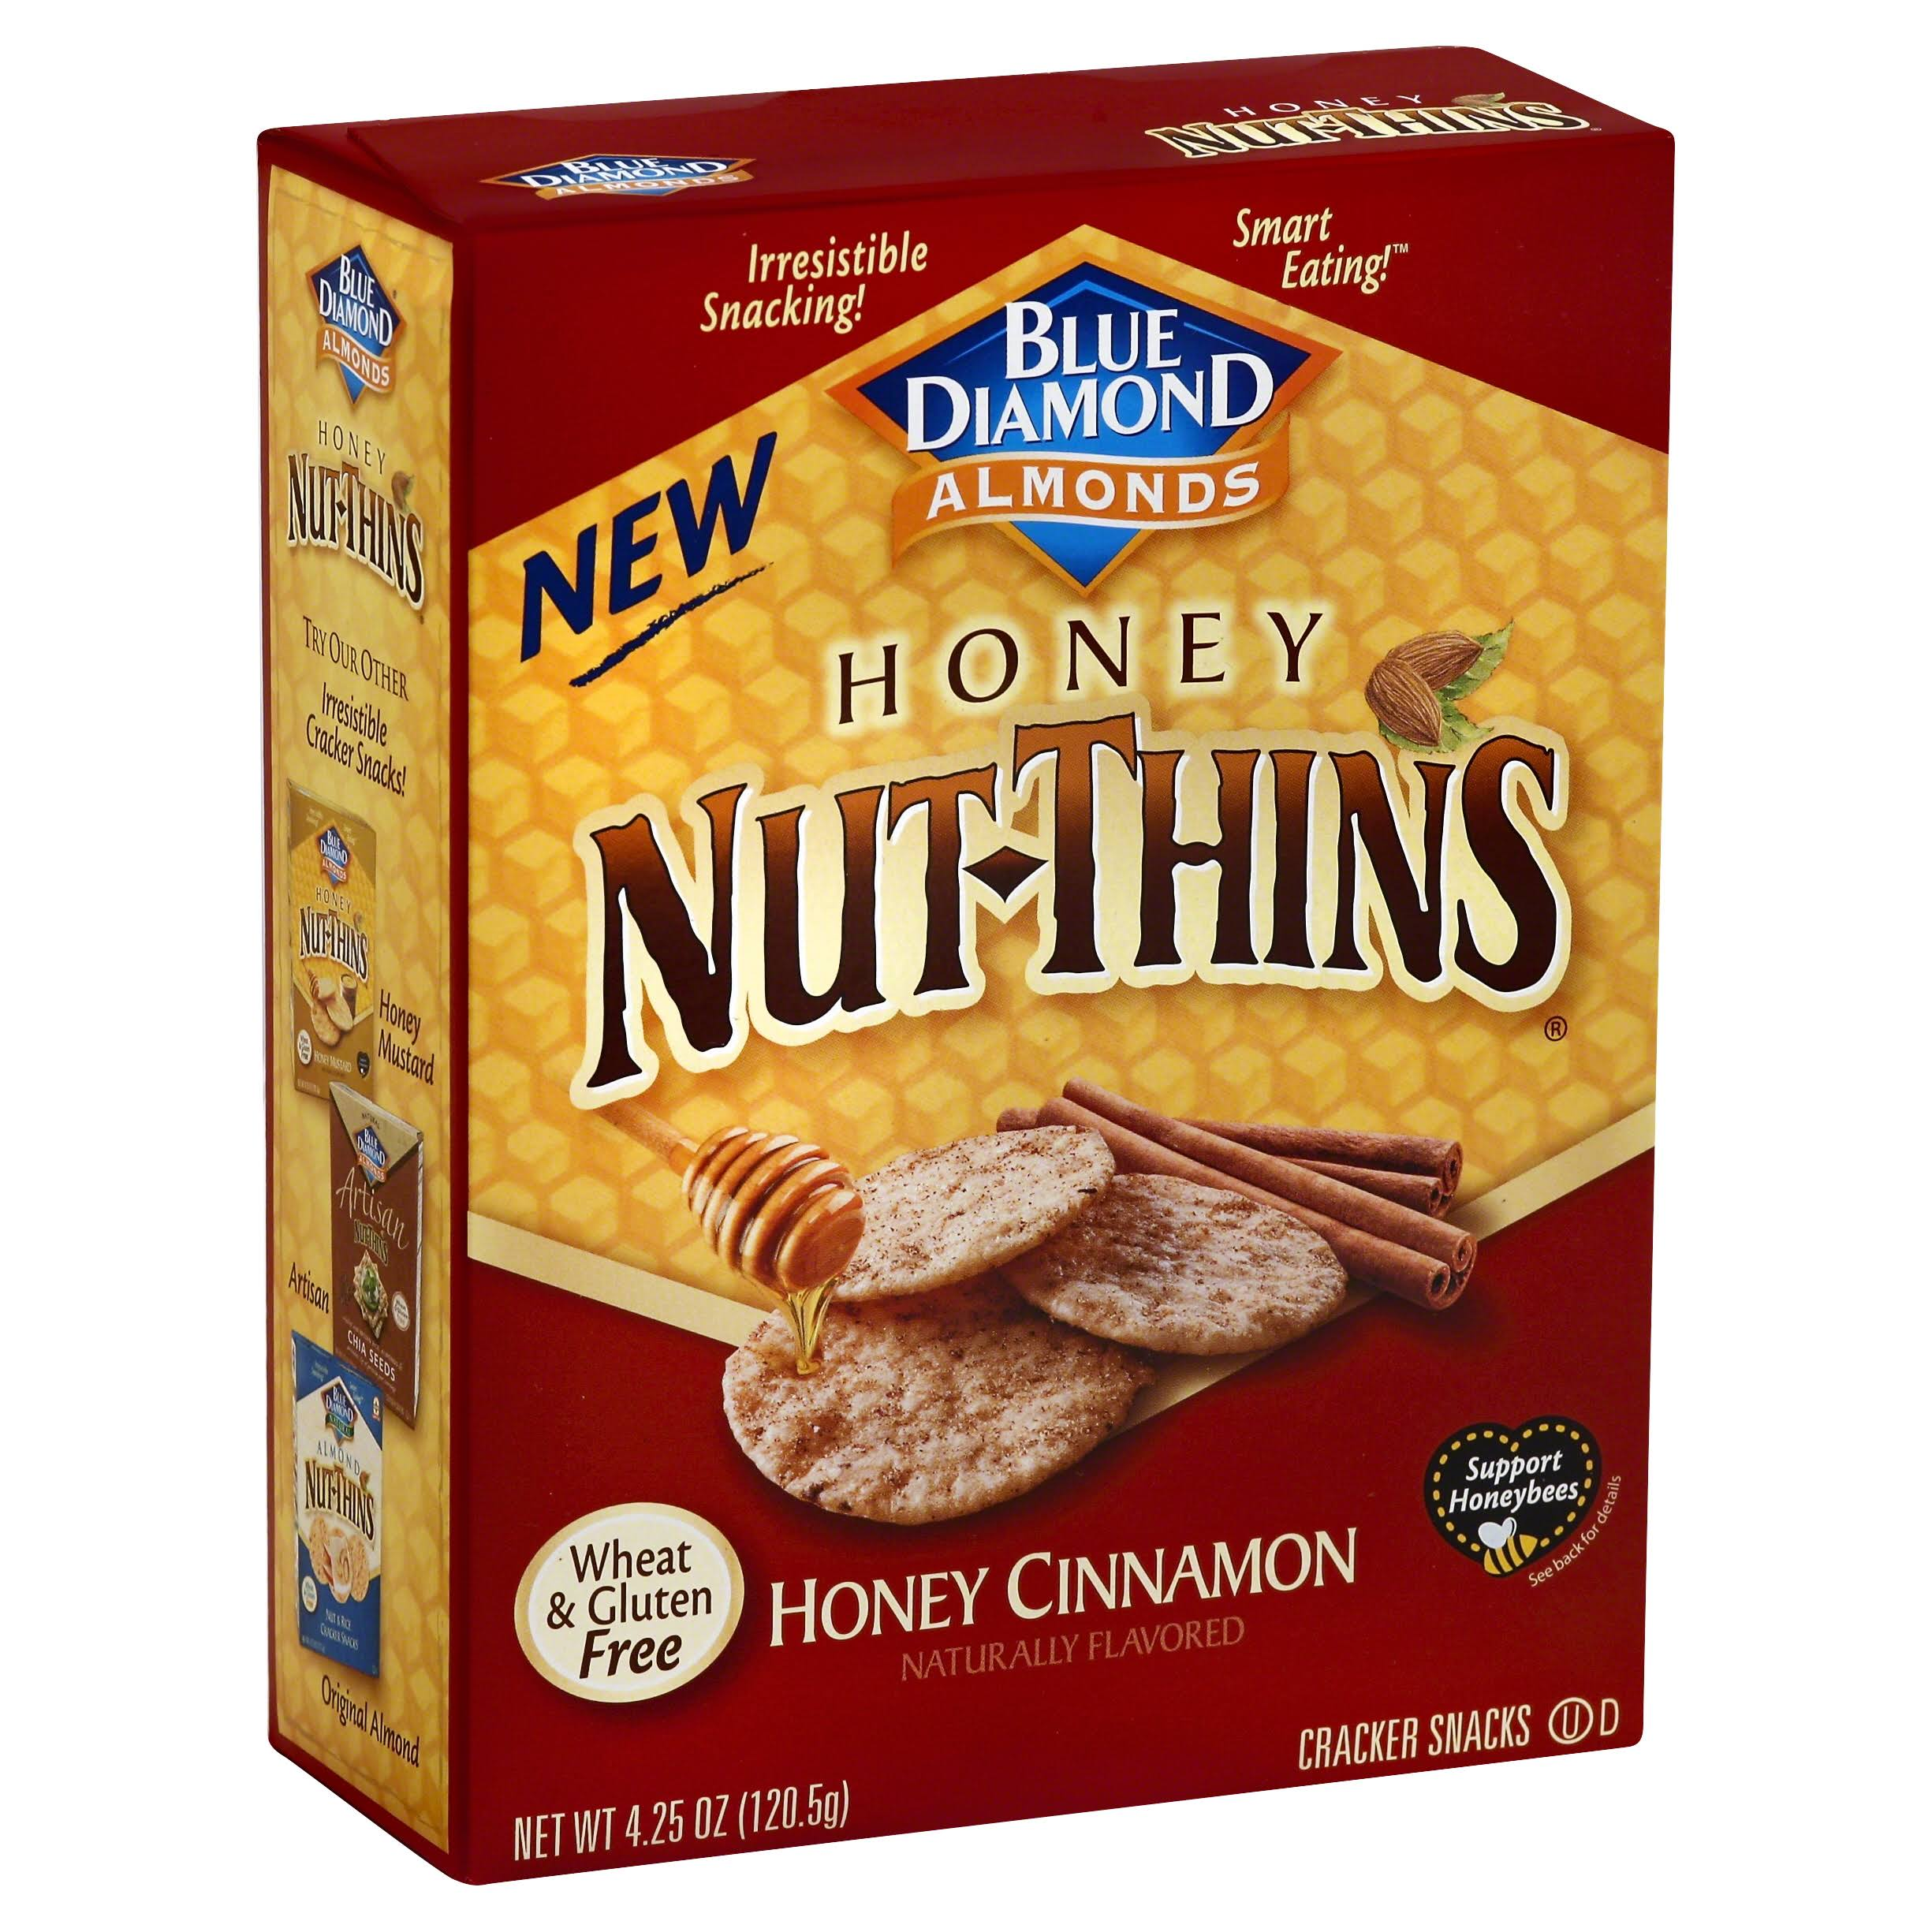 Blue Diamond Nut-thins Crackers - Honey Cinnamon, 120.5g